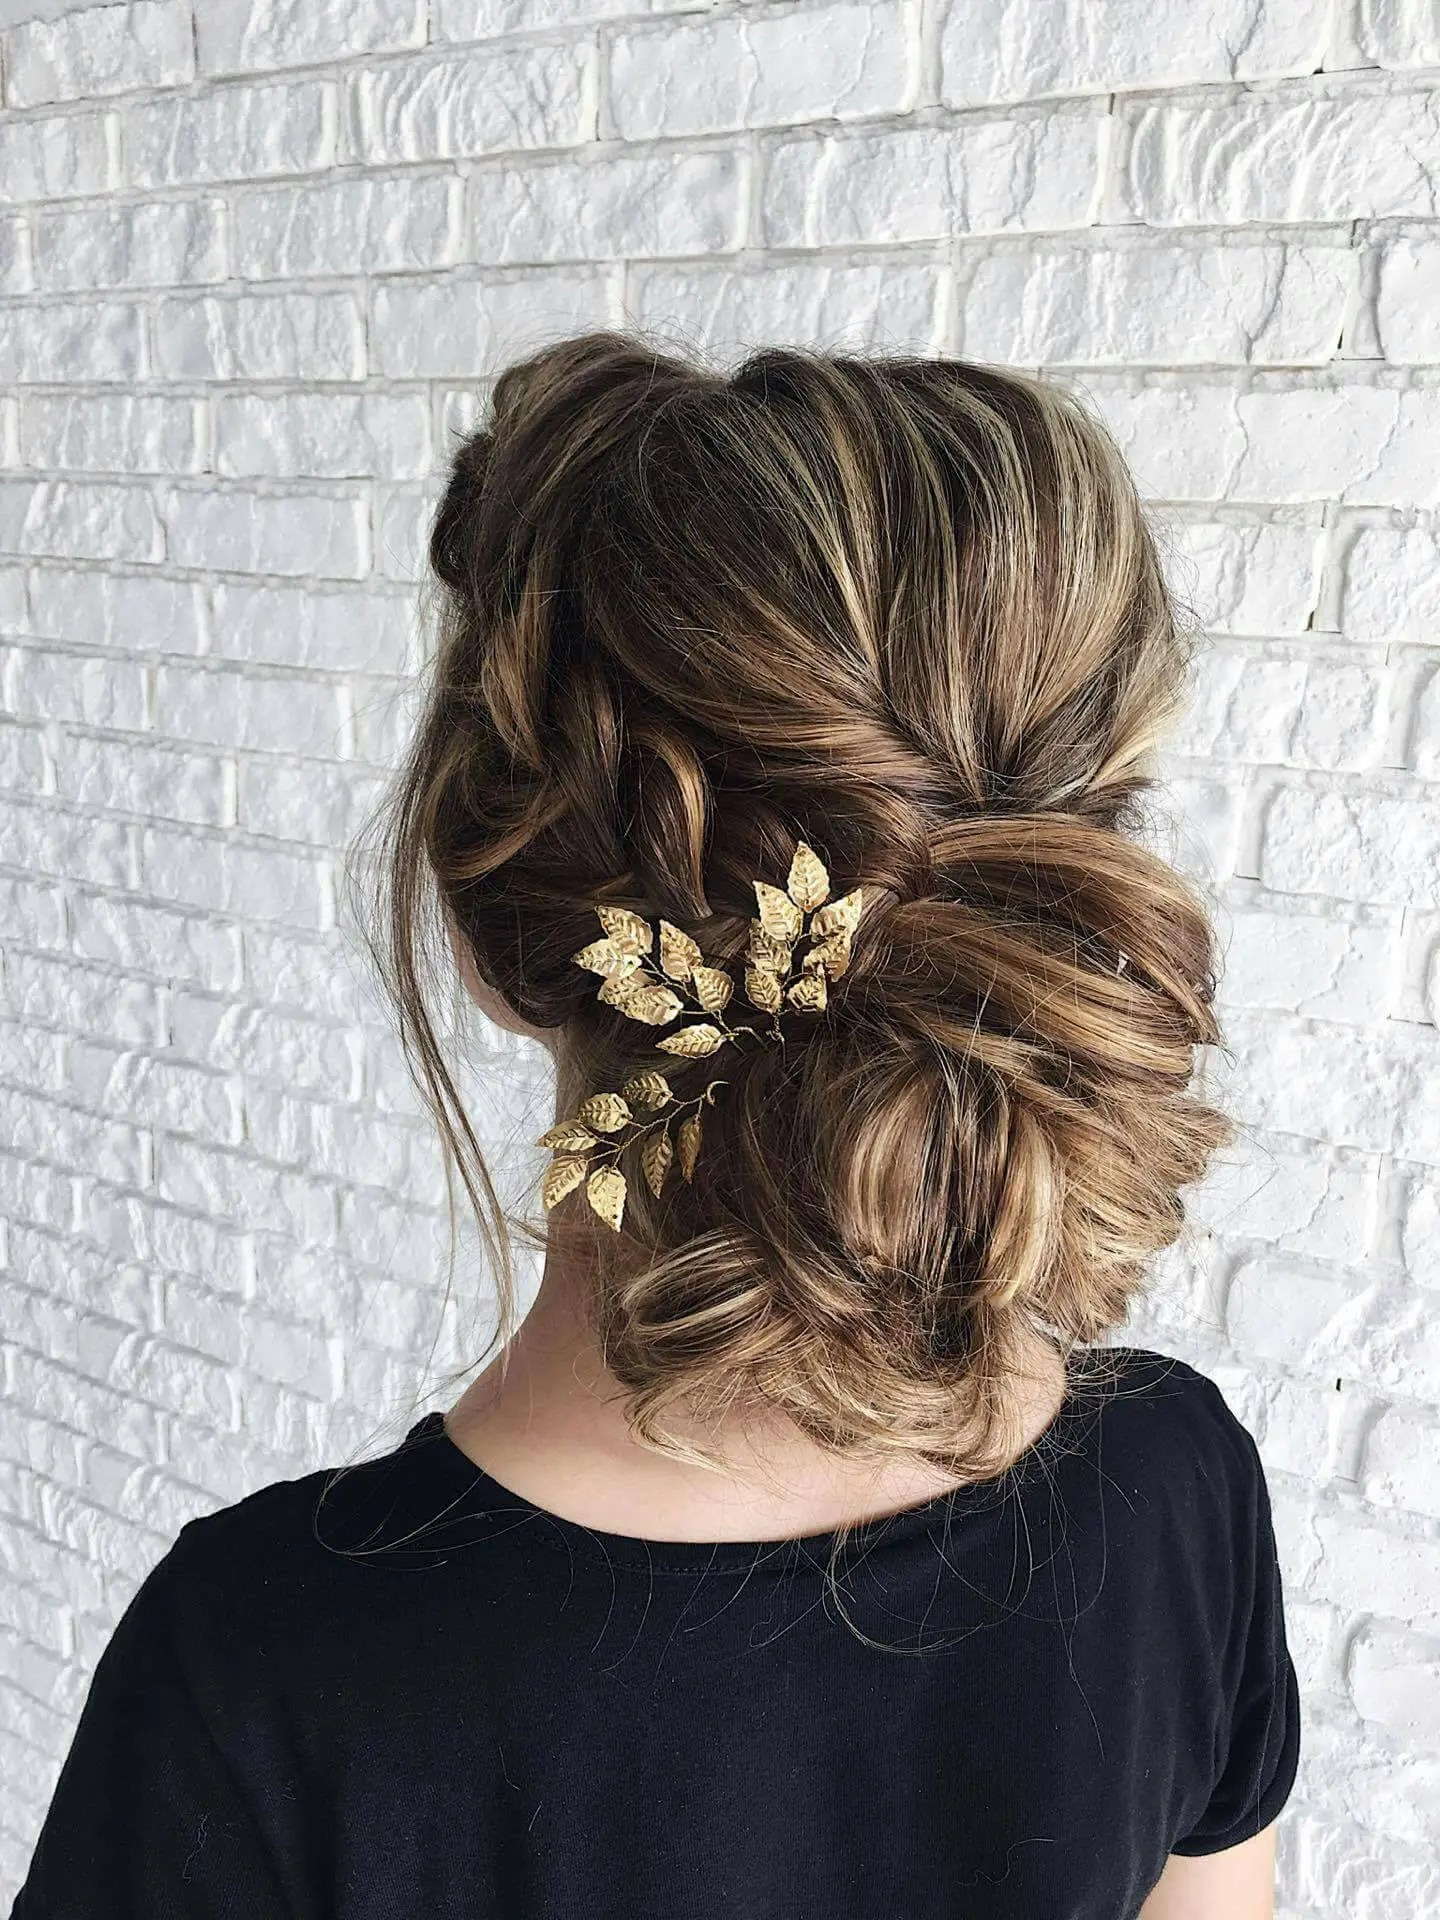 beauty and the beast inspired wedding hair piece bridal hair accessories hair comb gold leaf hair pin flower girl gift belle hair piece gold